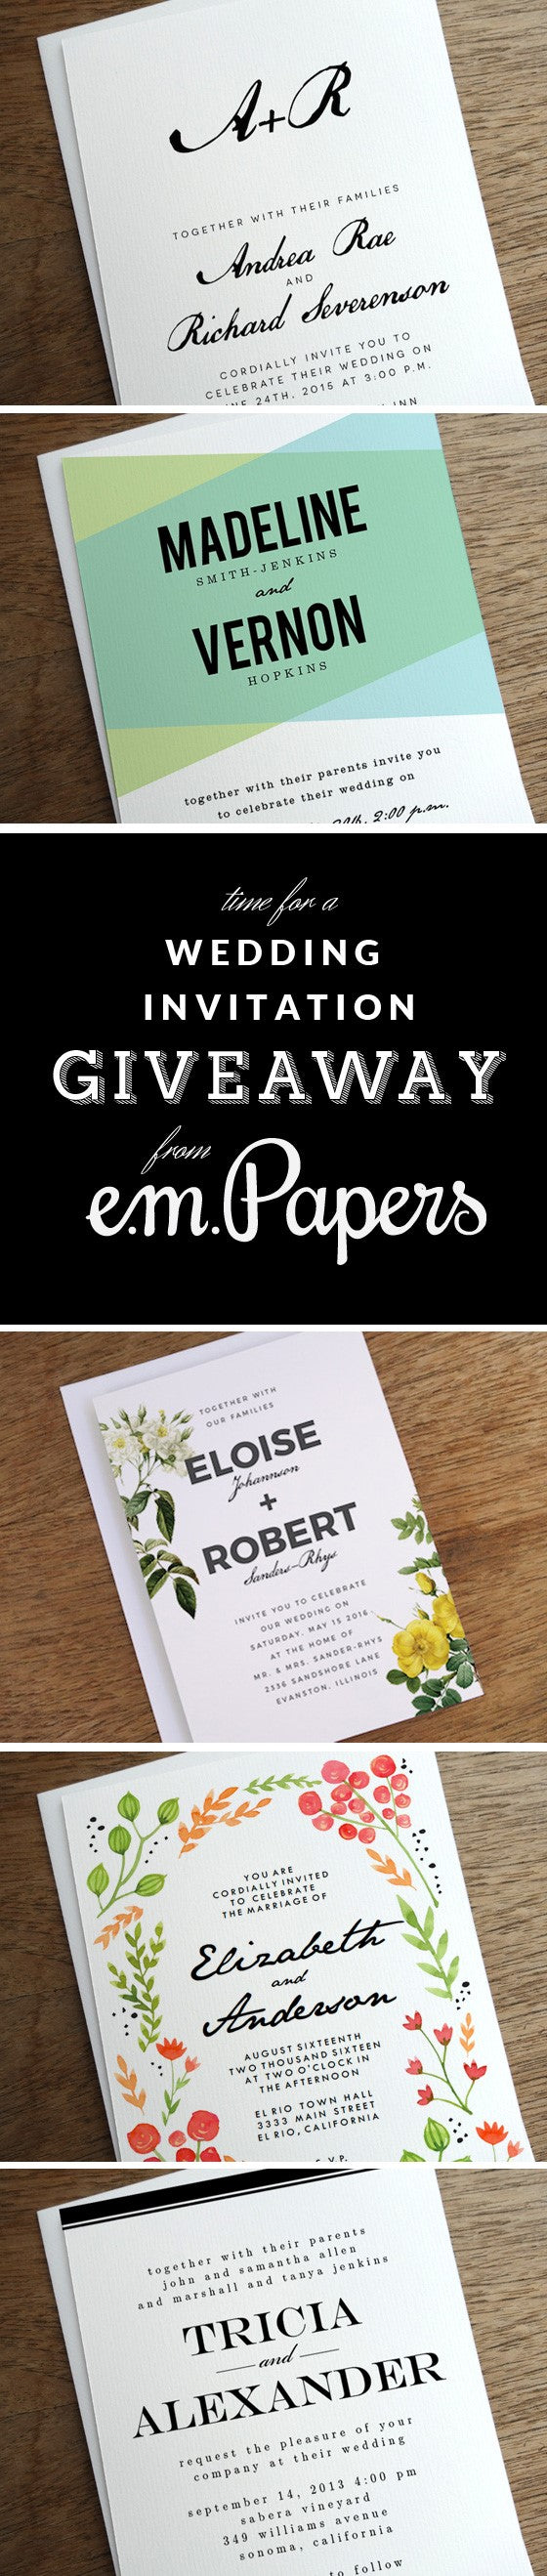 Printable wedding invitation giveaway contest from e.m.papers